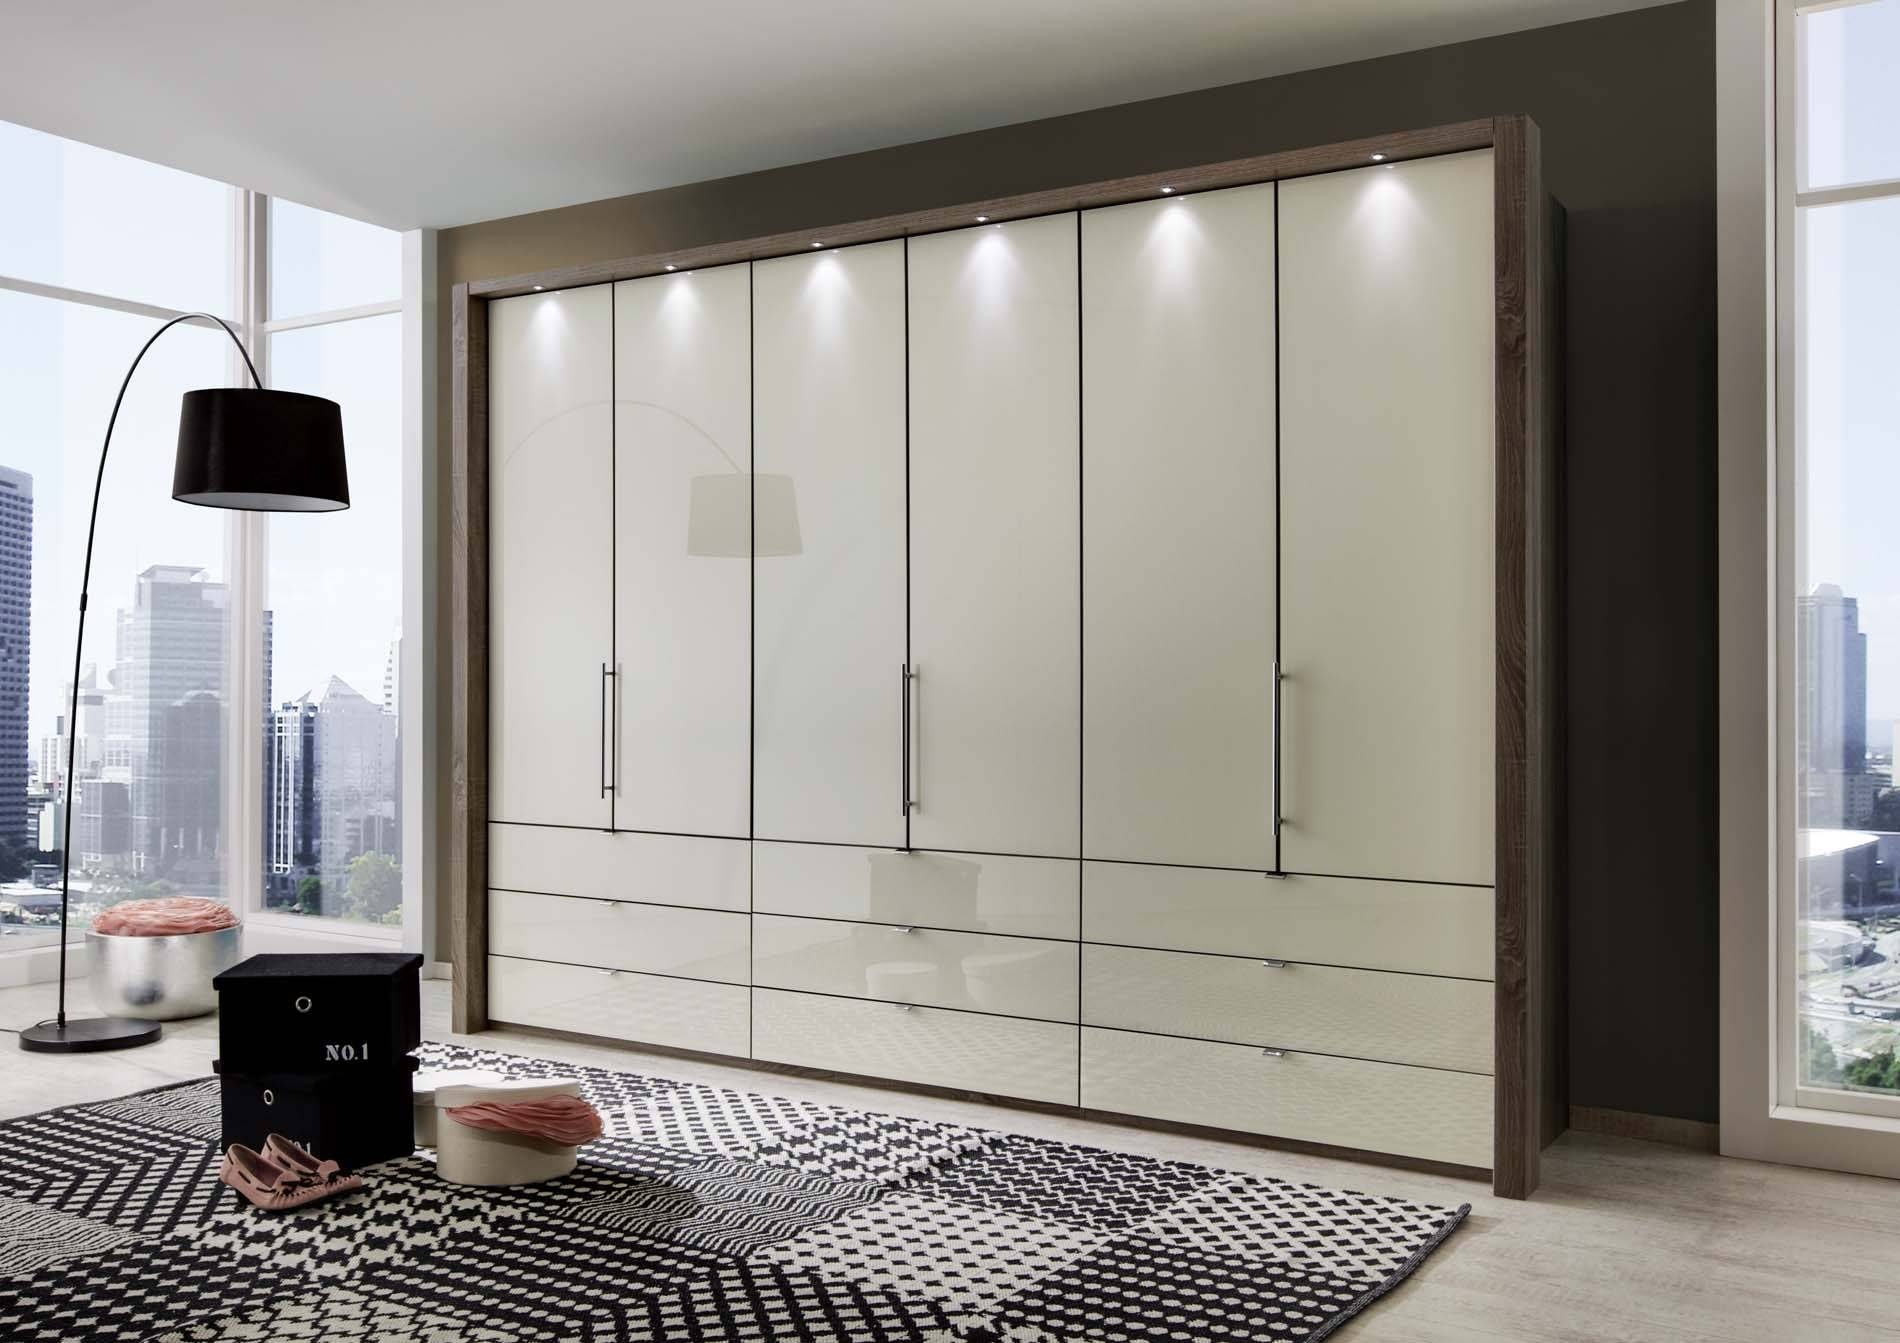 Kensington 6 Door 9 Drawer Wardrobe | Crendon Beds inside 6 Door Wardrobes Bedroom Furniture (Image 12 of 15)